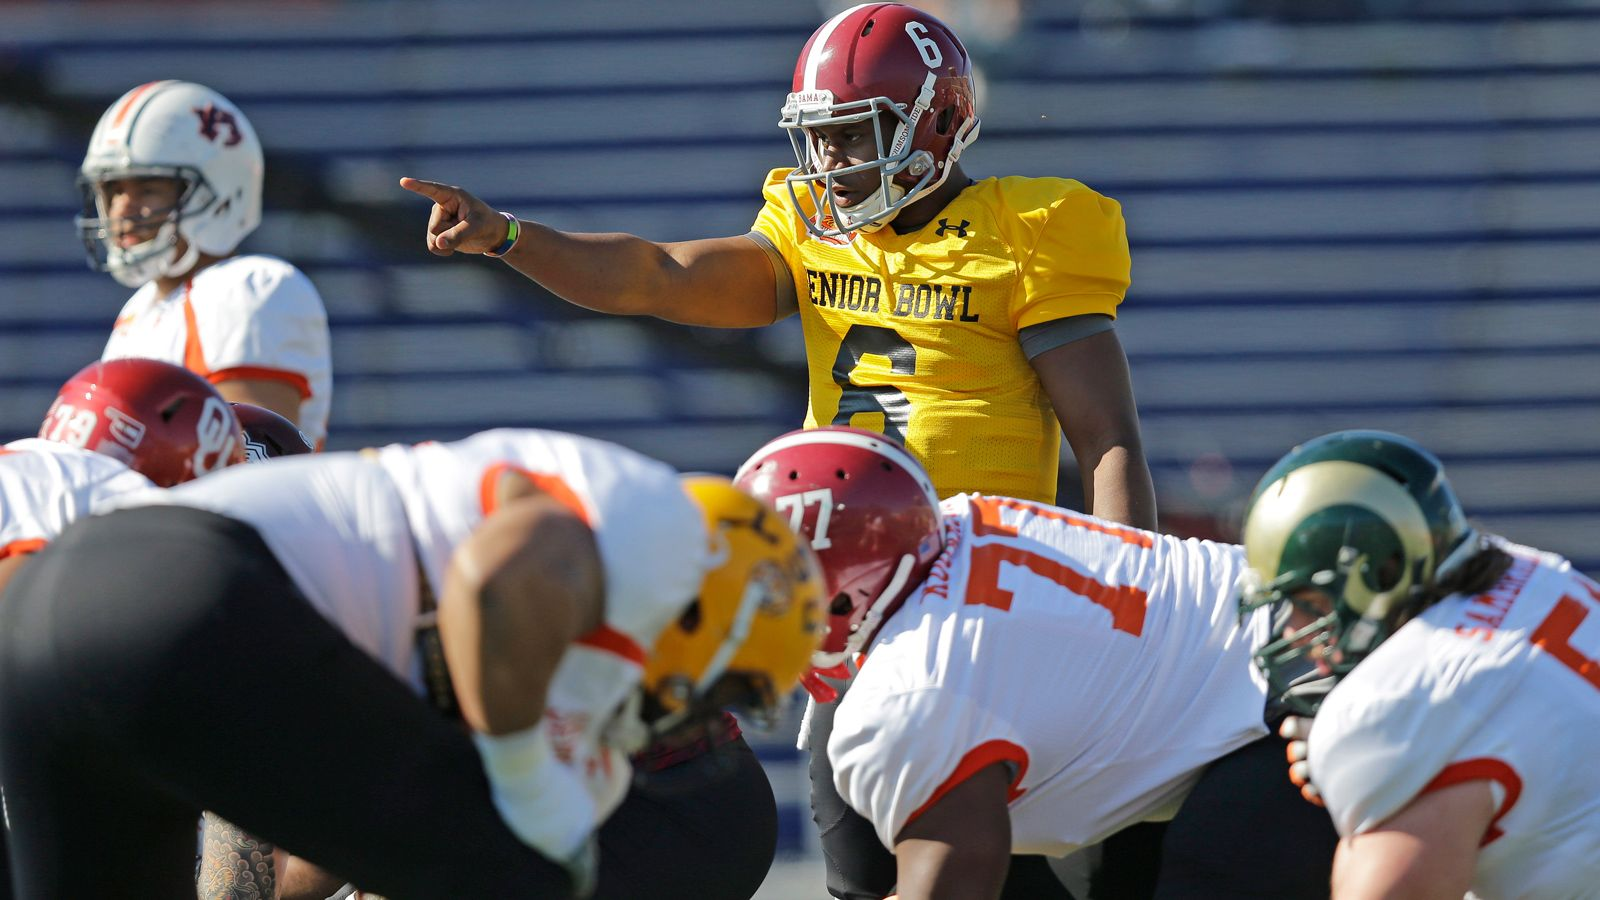 SEC players will take part in Senior Bowl today